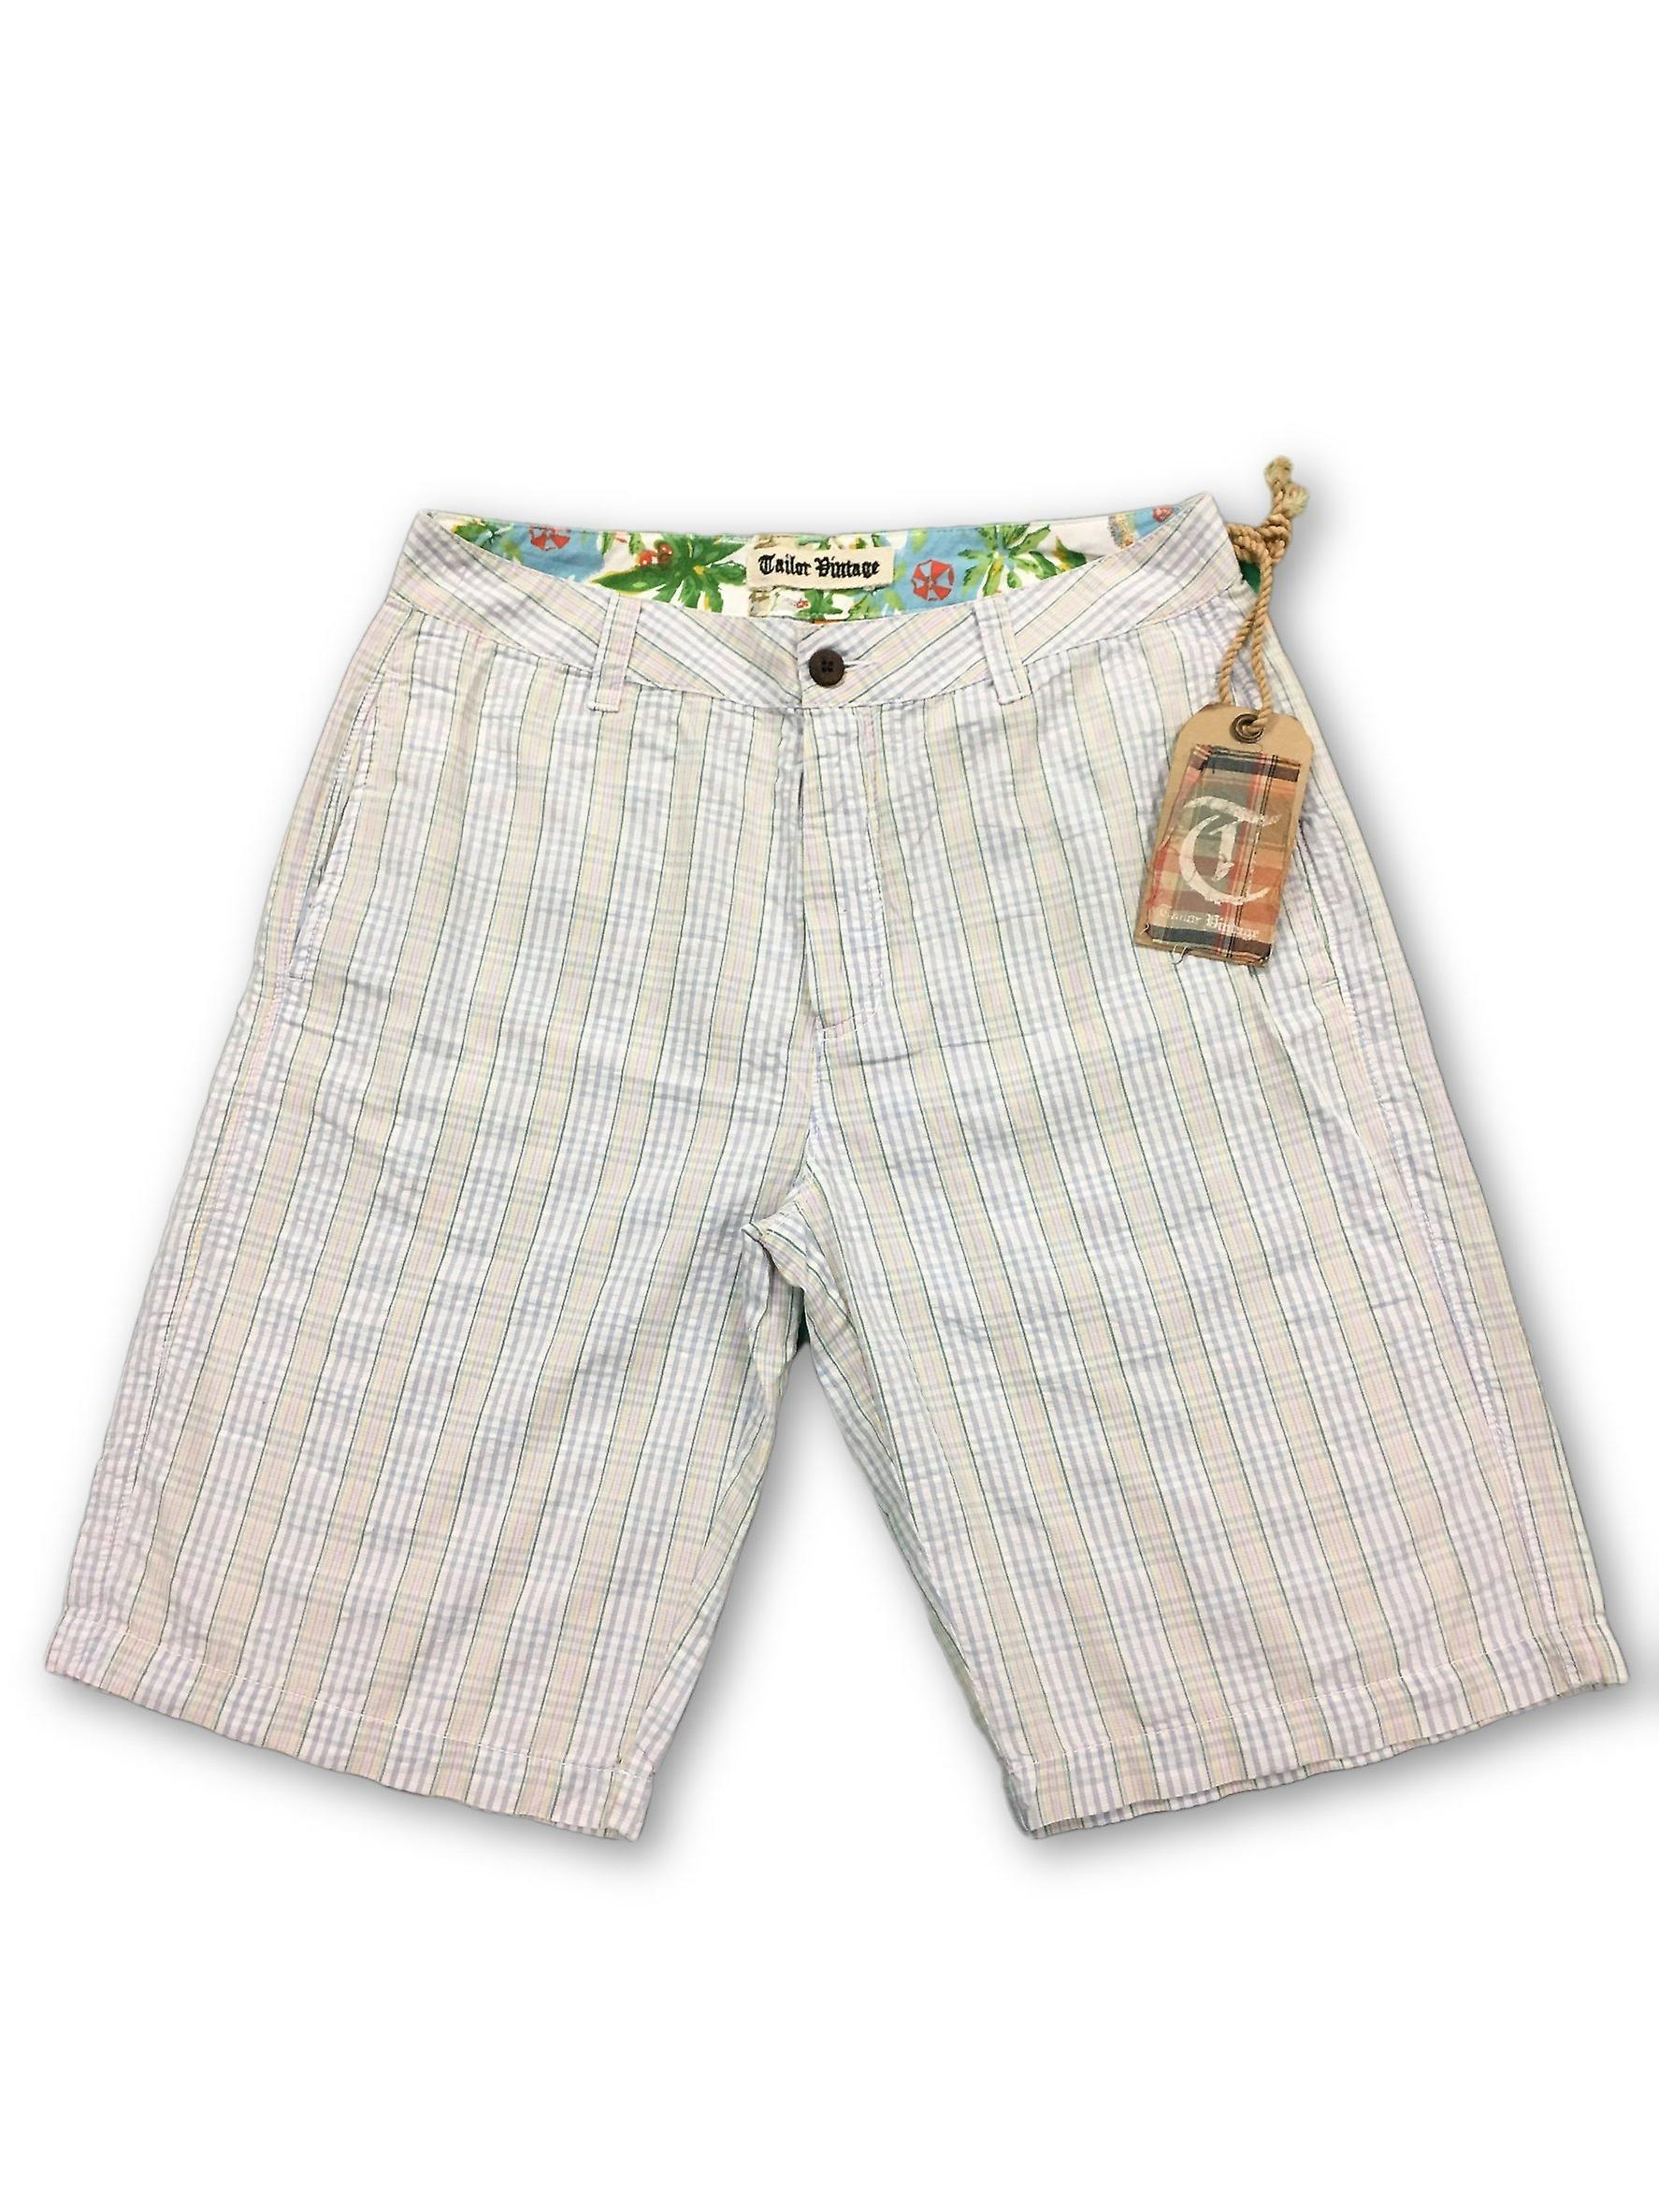 Tailor Vintage courtes in blanc micro check